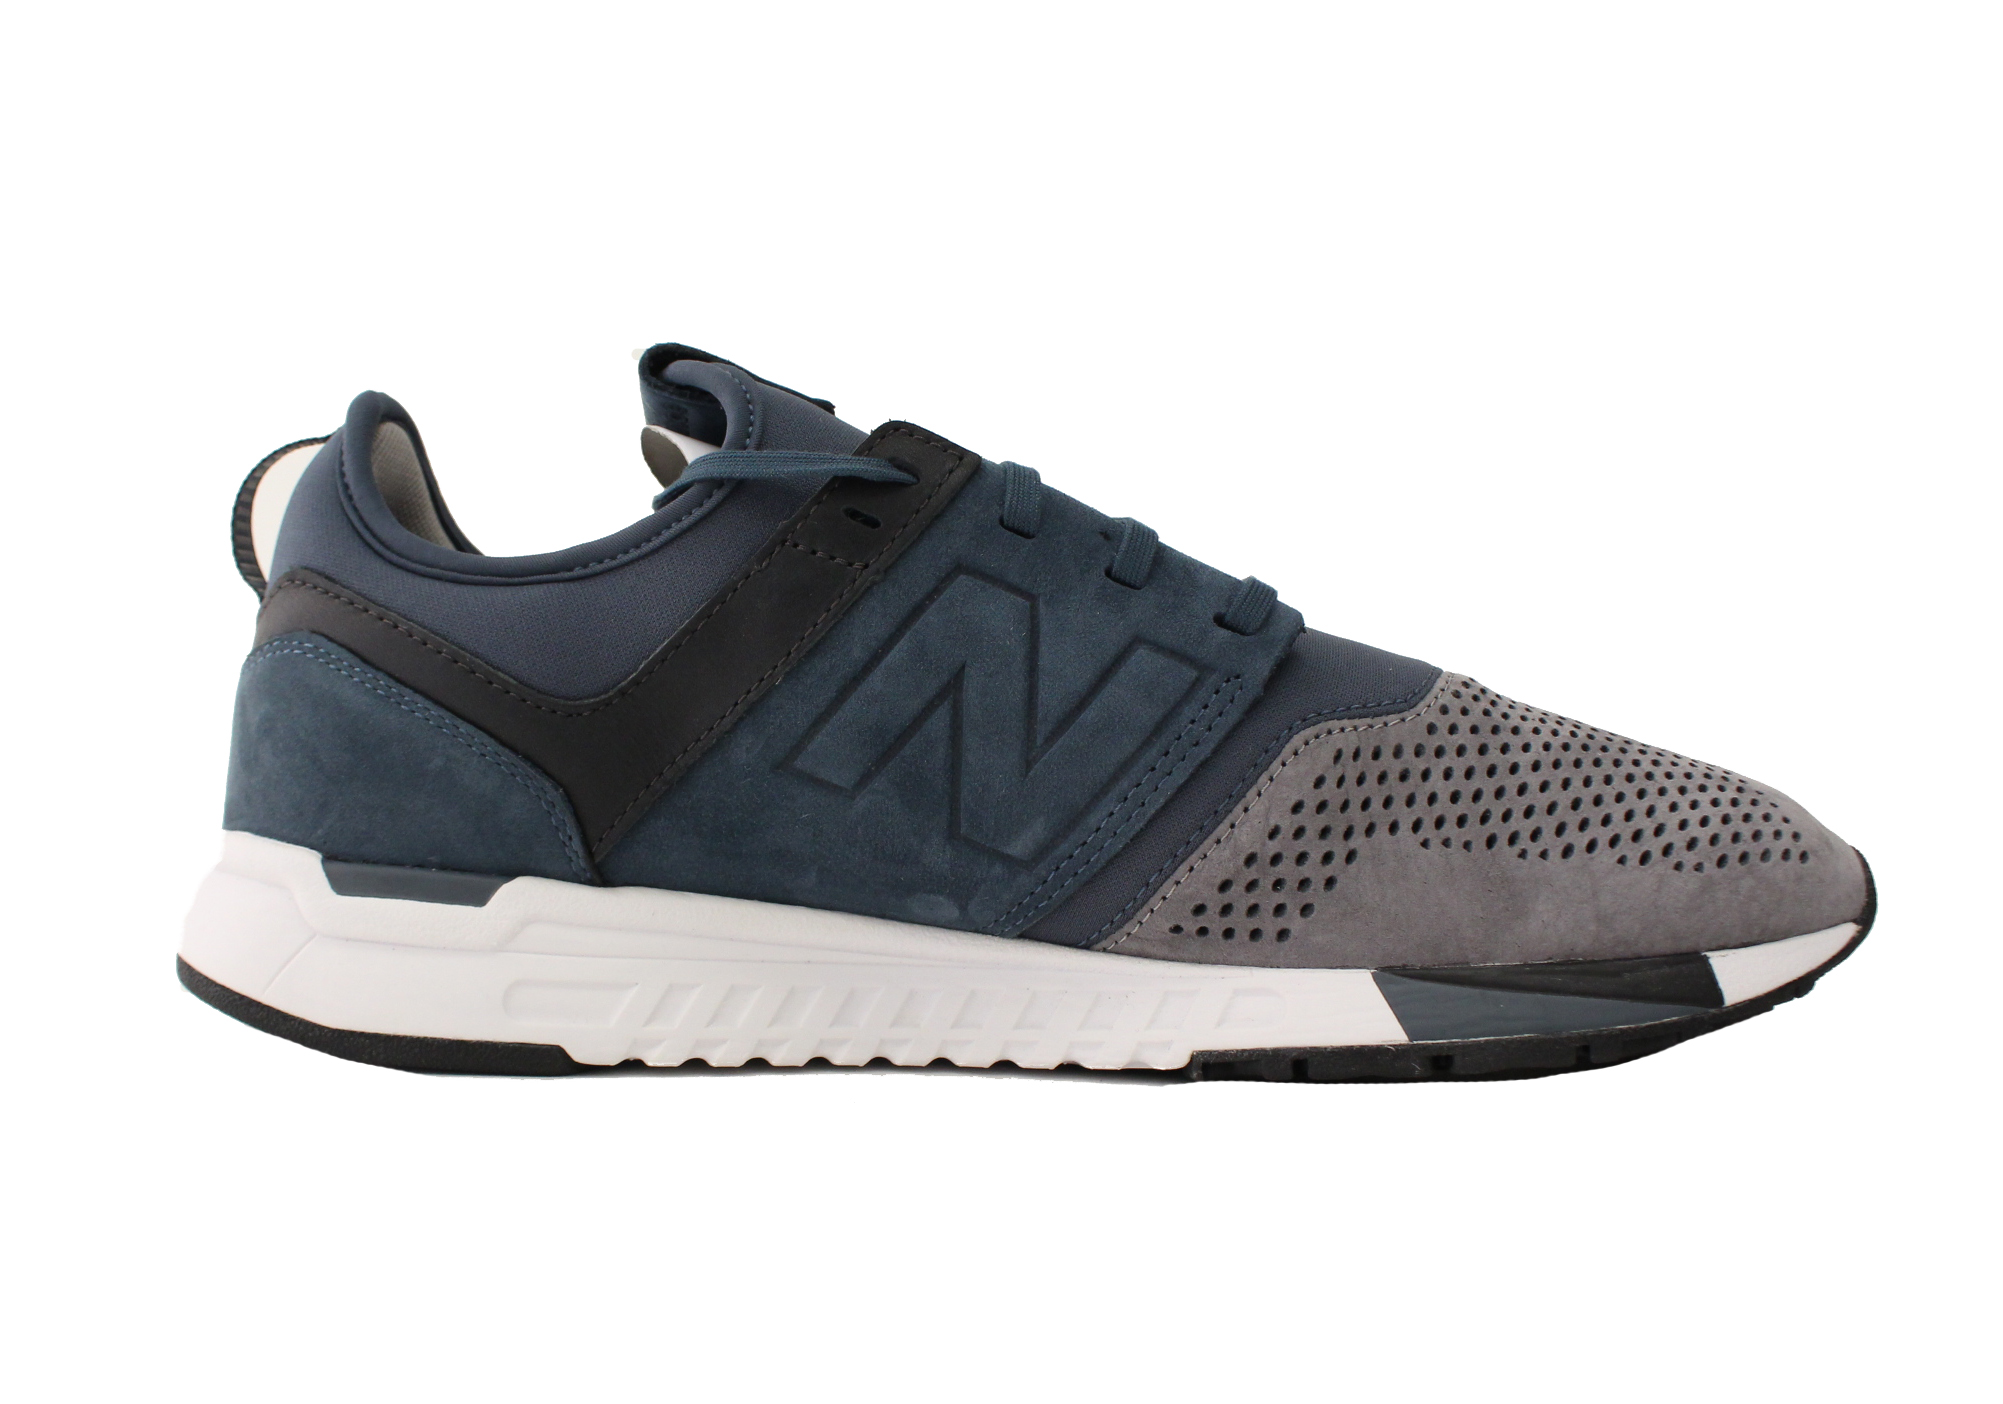 NEW BALANCE 247 LUXE SUEDE SZ 12 ICONS PACK ORION BLUE NAVY GREY MRL247N3